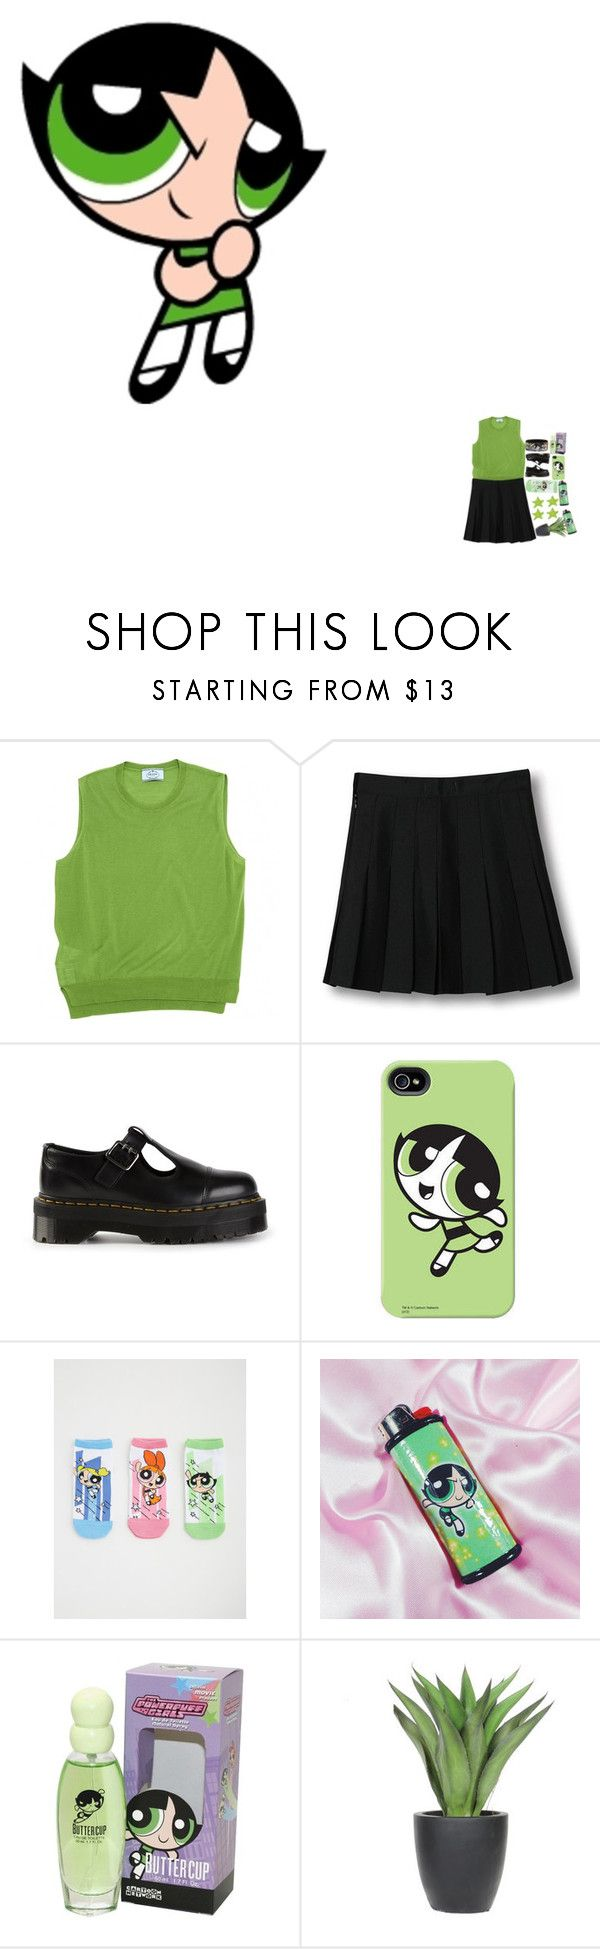 """5297"" by tiffanyelinor ❤ liked on Polyvore featuring Prada, WithChic, Dr. Martens, Torrid and Lux-Art Silks"